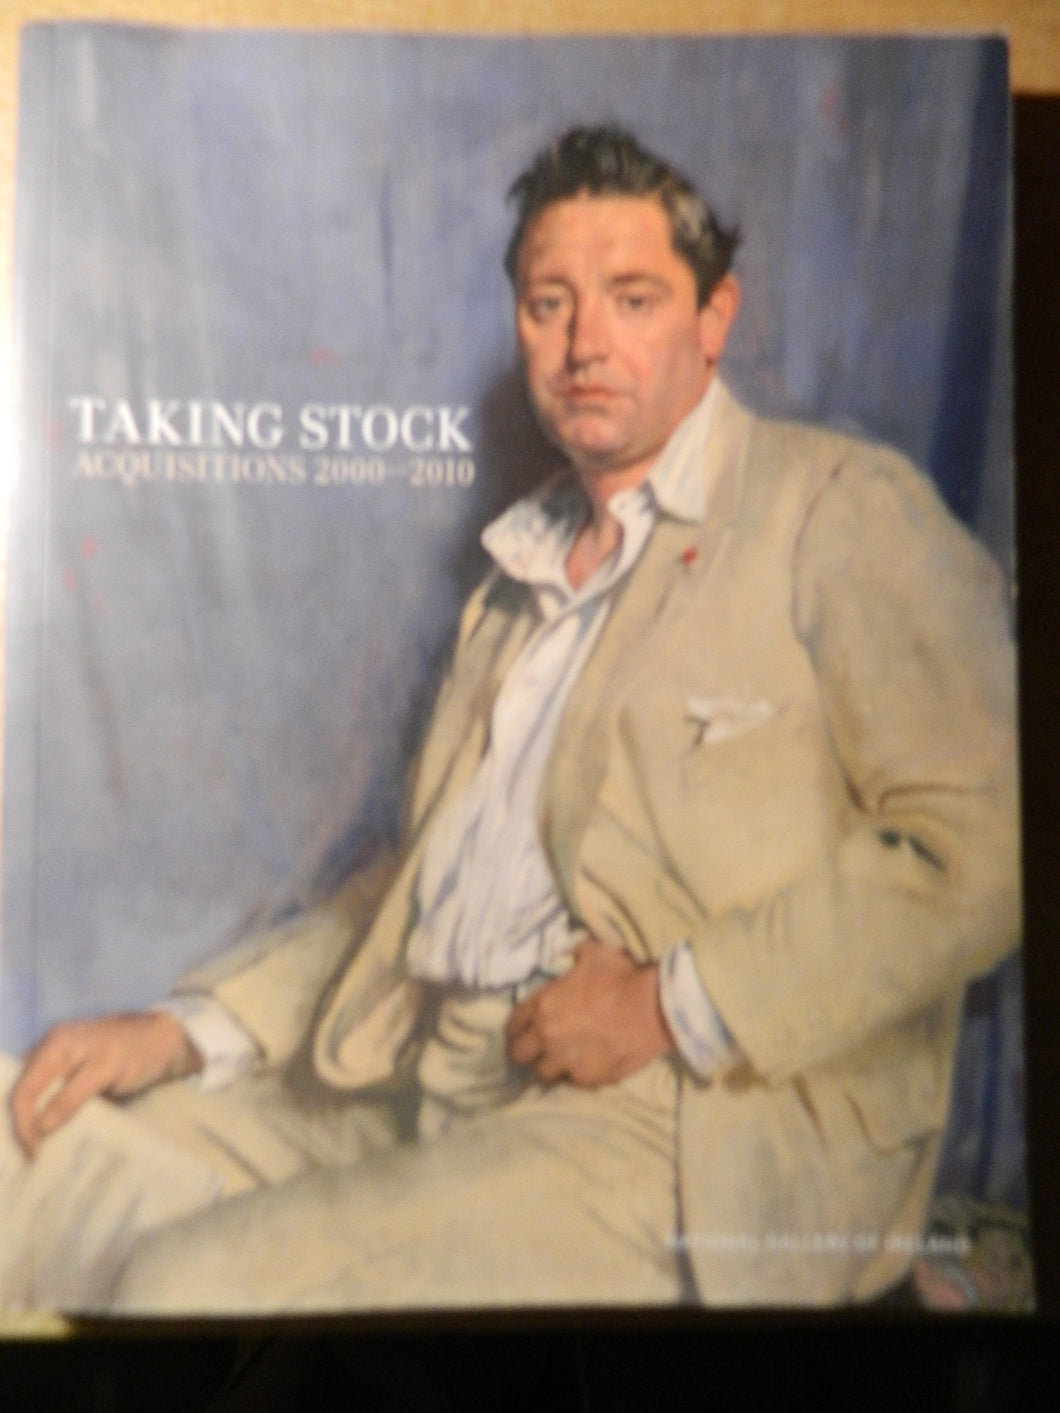 Taking Stock. Acquisitions 2000-2010. National Gallery of Ireland.